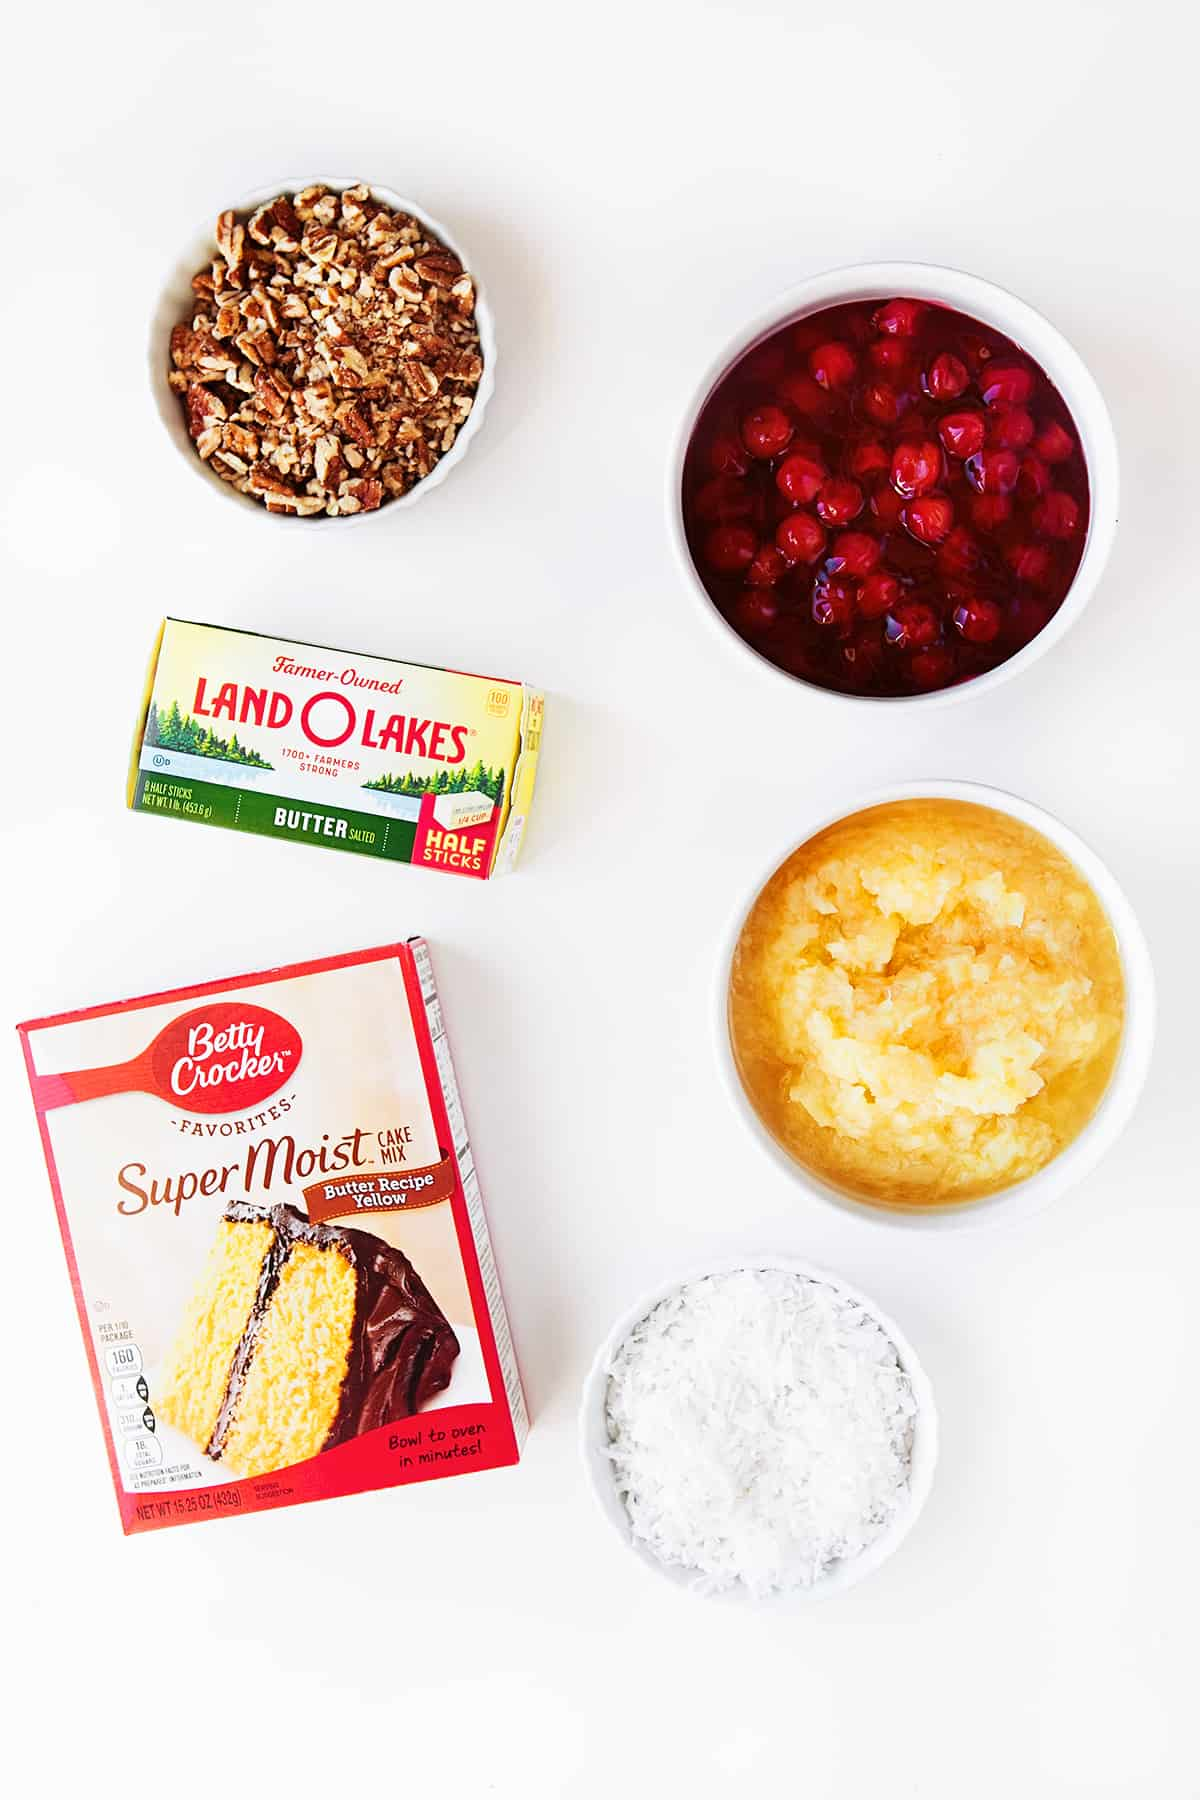 Ingredients for Cherry Pineapple Dump Cake